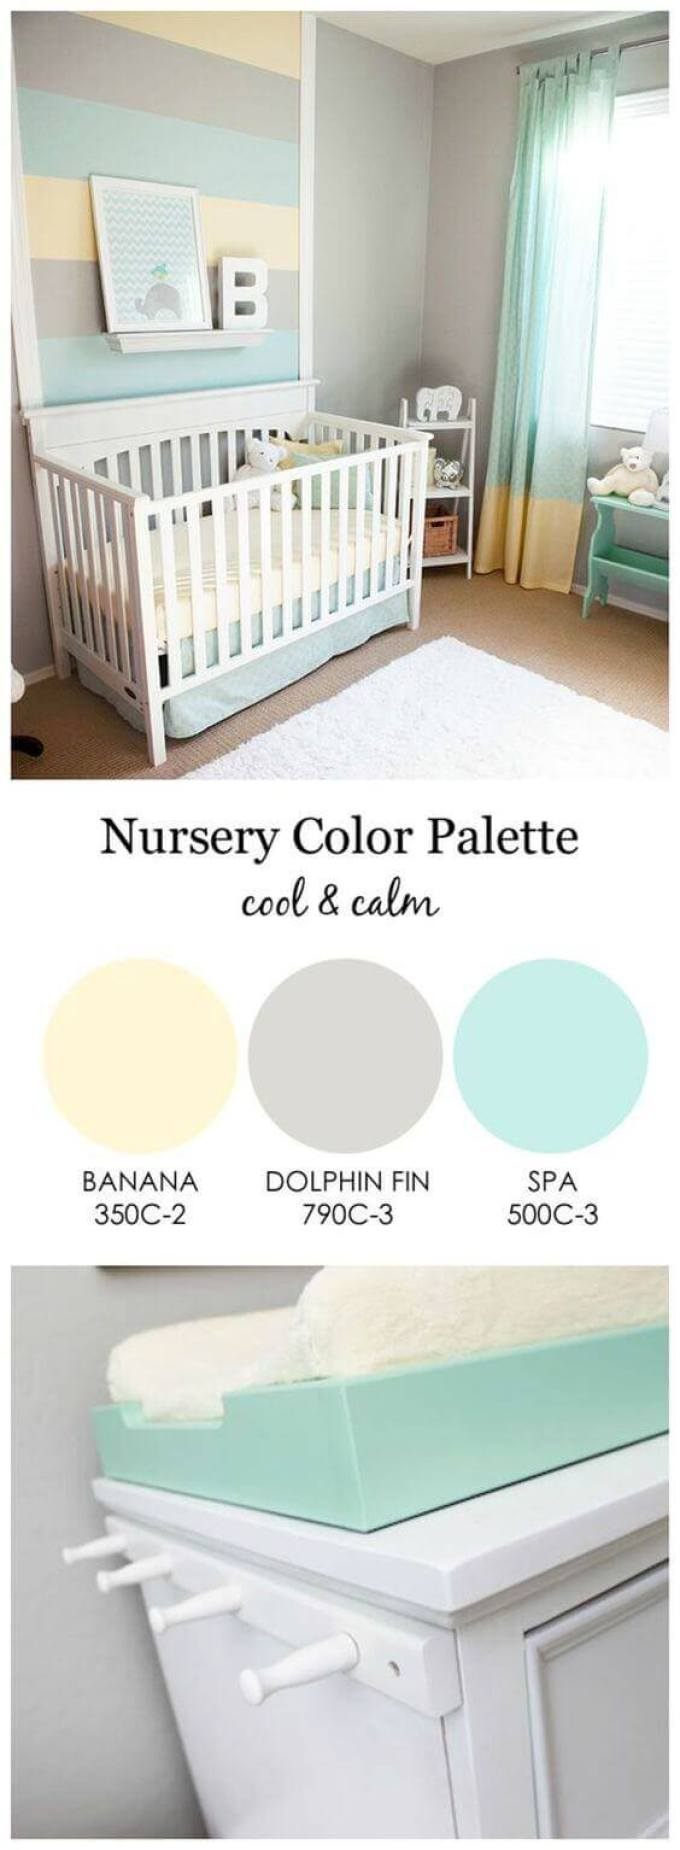 Baby Room Ideas Cool Colors for Baby Girl Room Ideas - Harppost.com